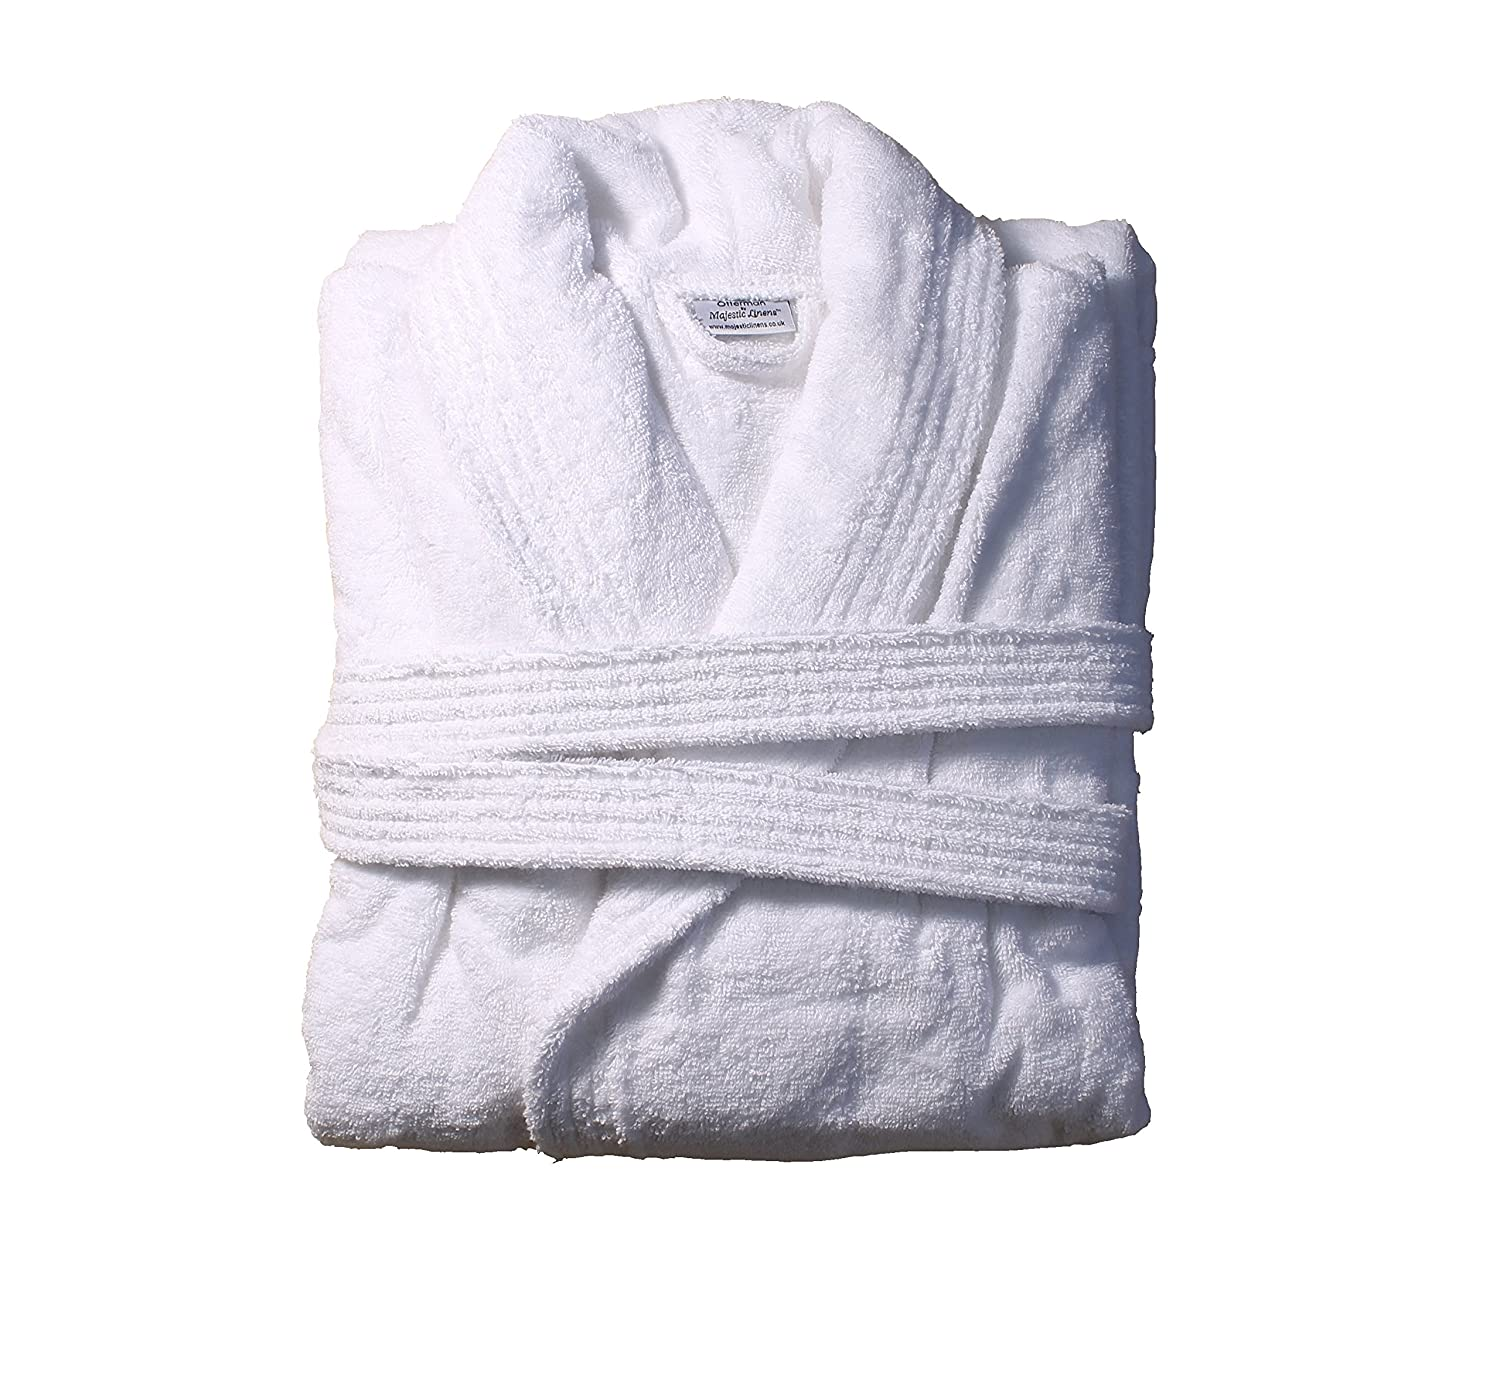 Textiles Direct White Otterman Bathrobe 100% Turkish Cotton 500 GSM ...